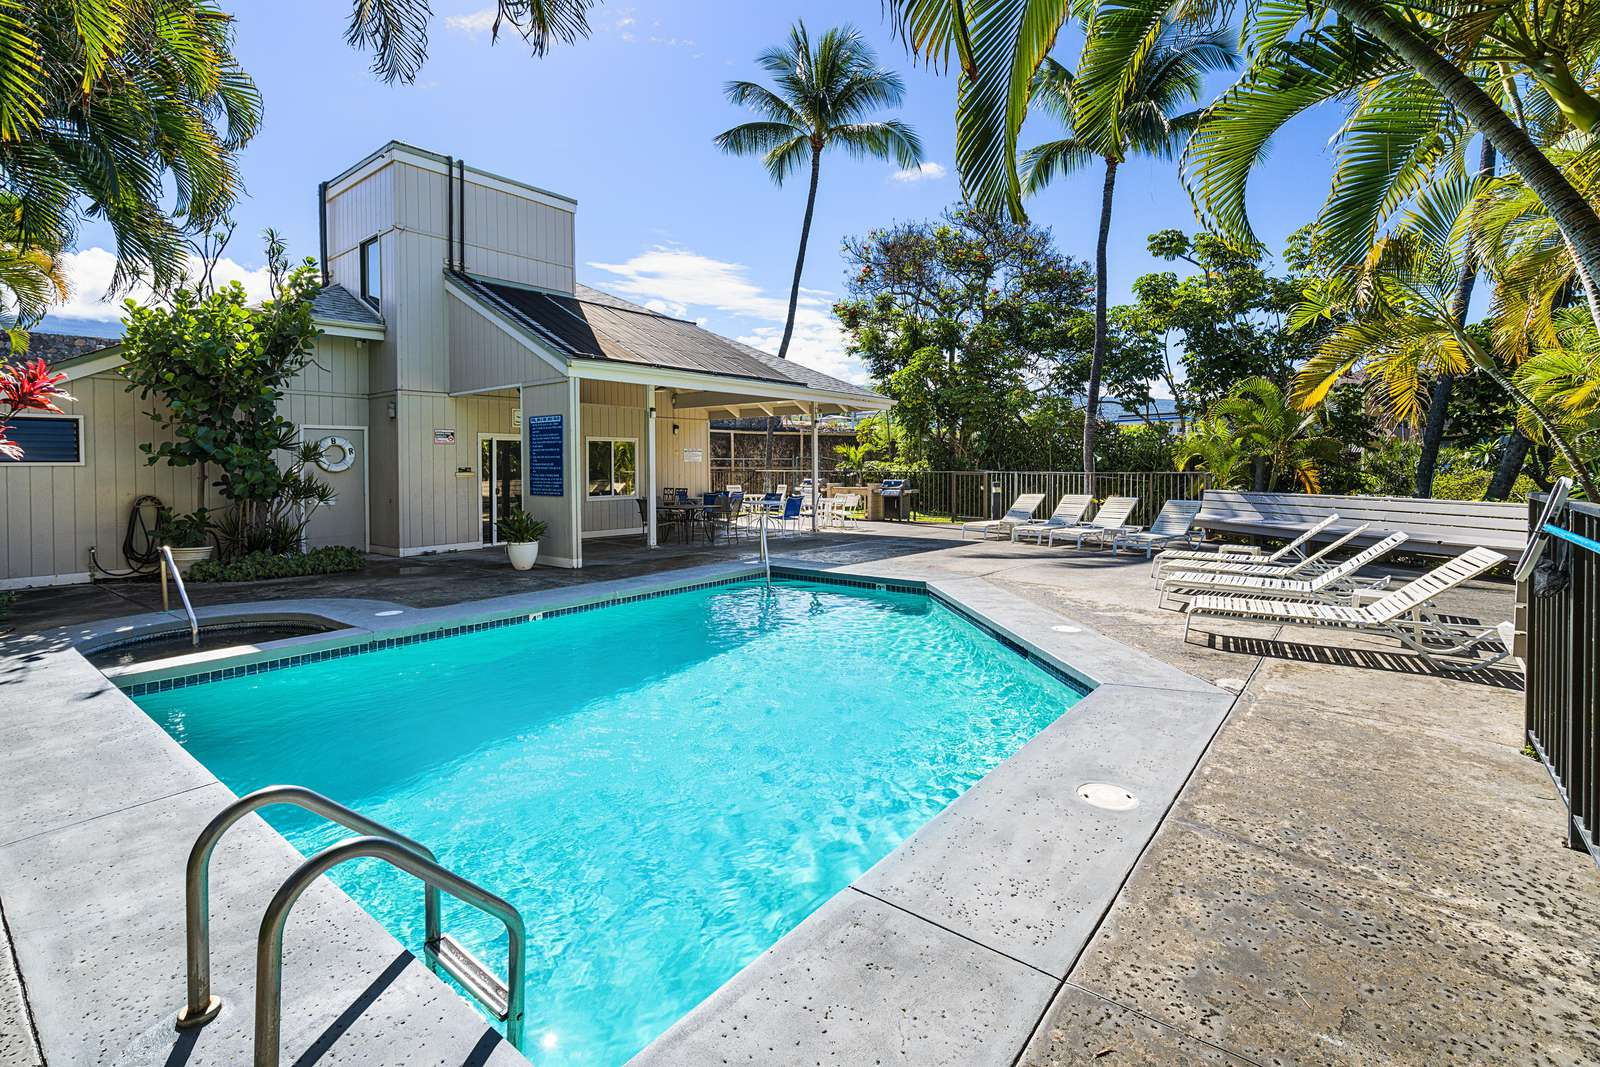 Kailua Bay Resort has a large pool/spa & BBQ area.